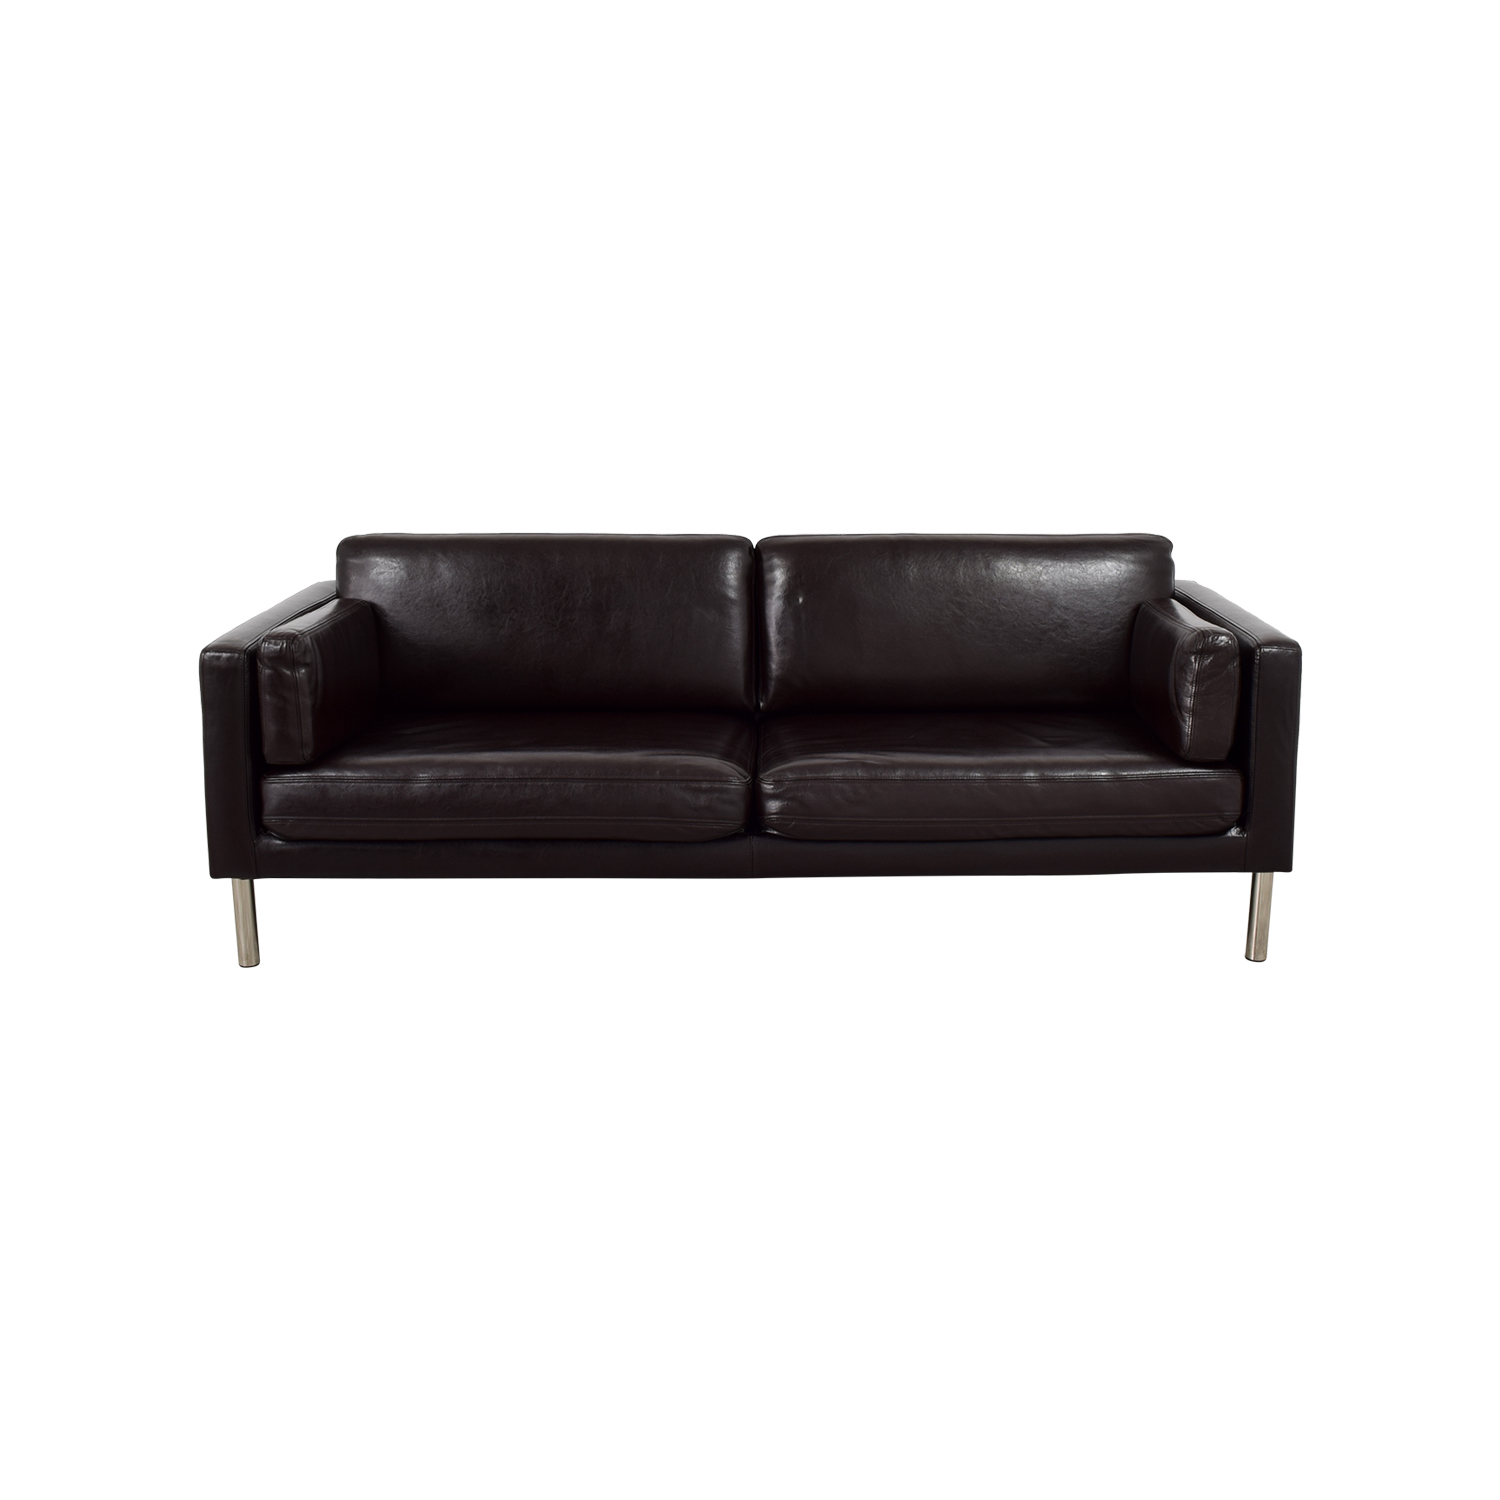 room and board leather sofa bed z gallerie mammoth 41 off ikea ieka sater brown couch sofas